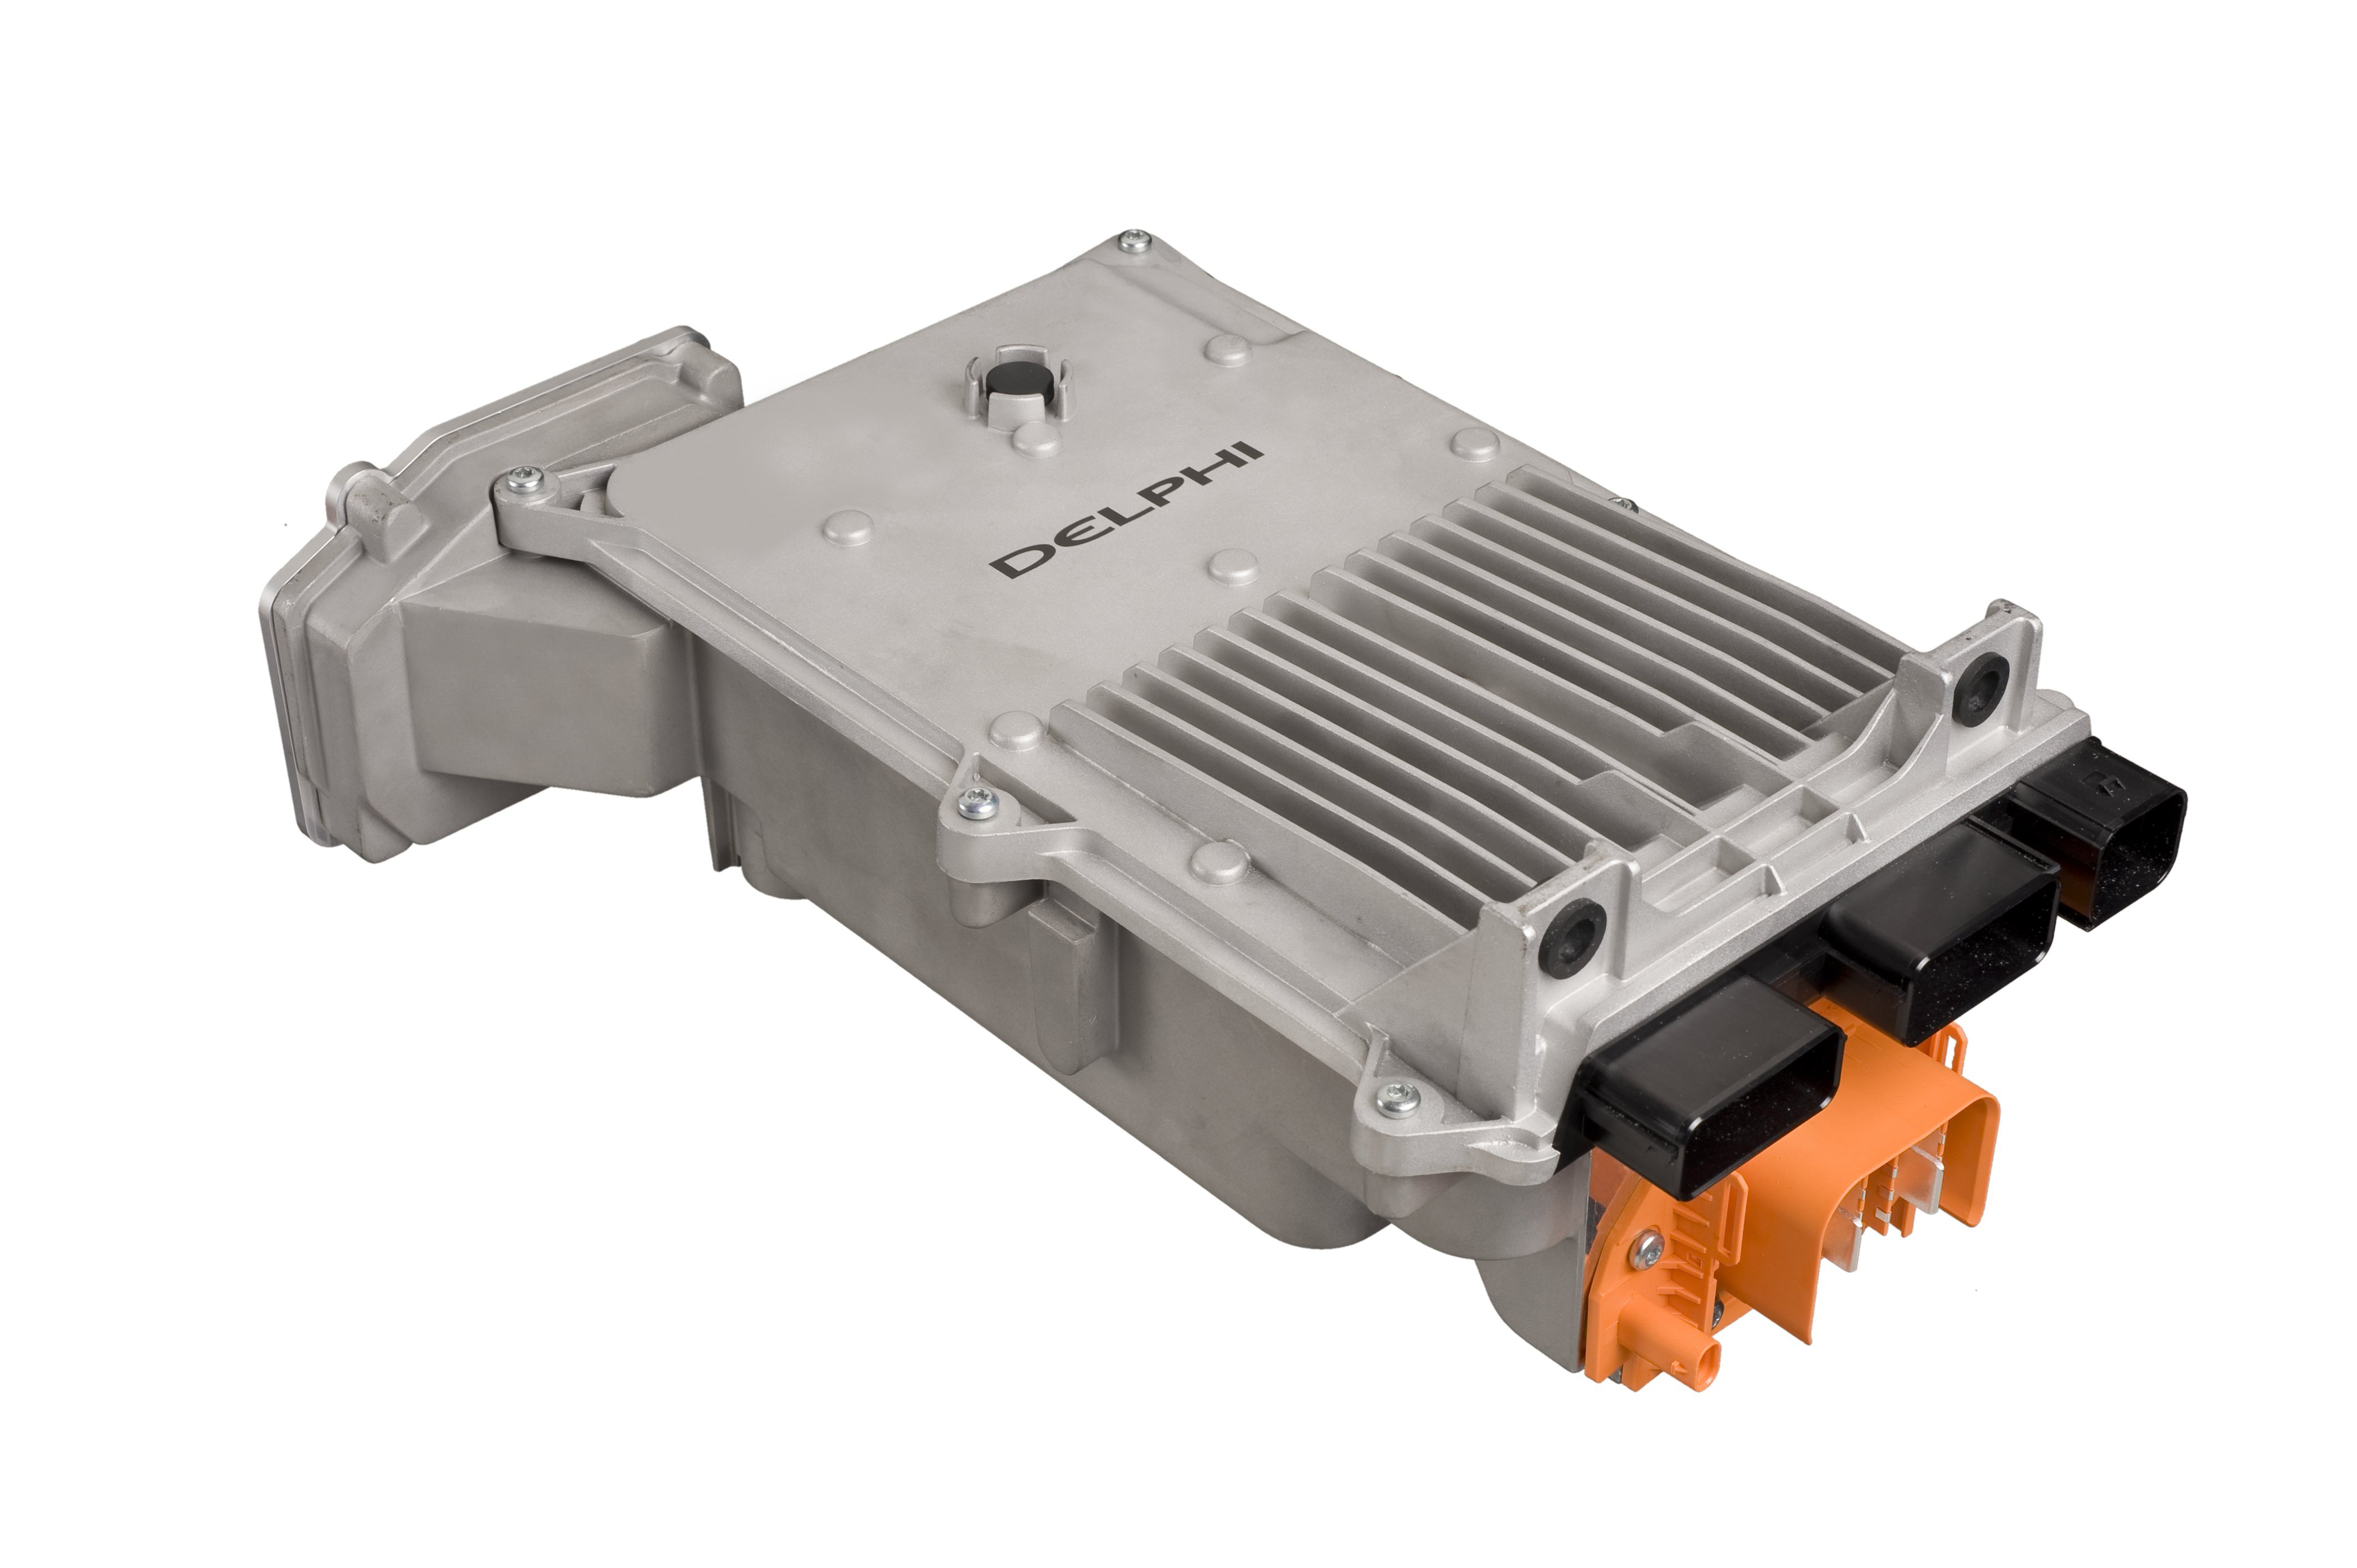 Delphi Introduces New Power Inverter for EVs and Hybrids